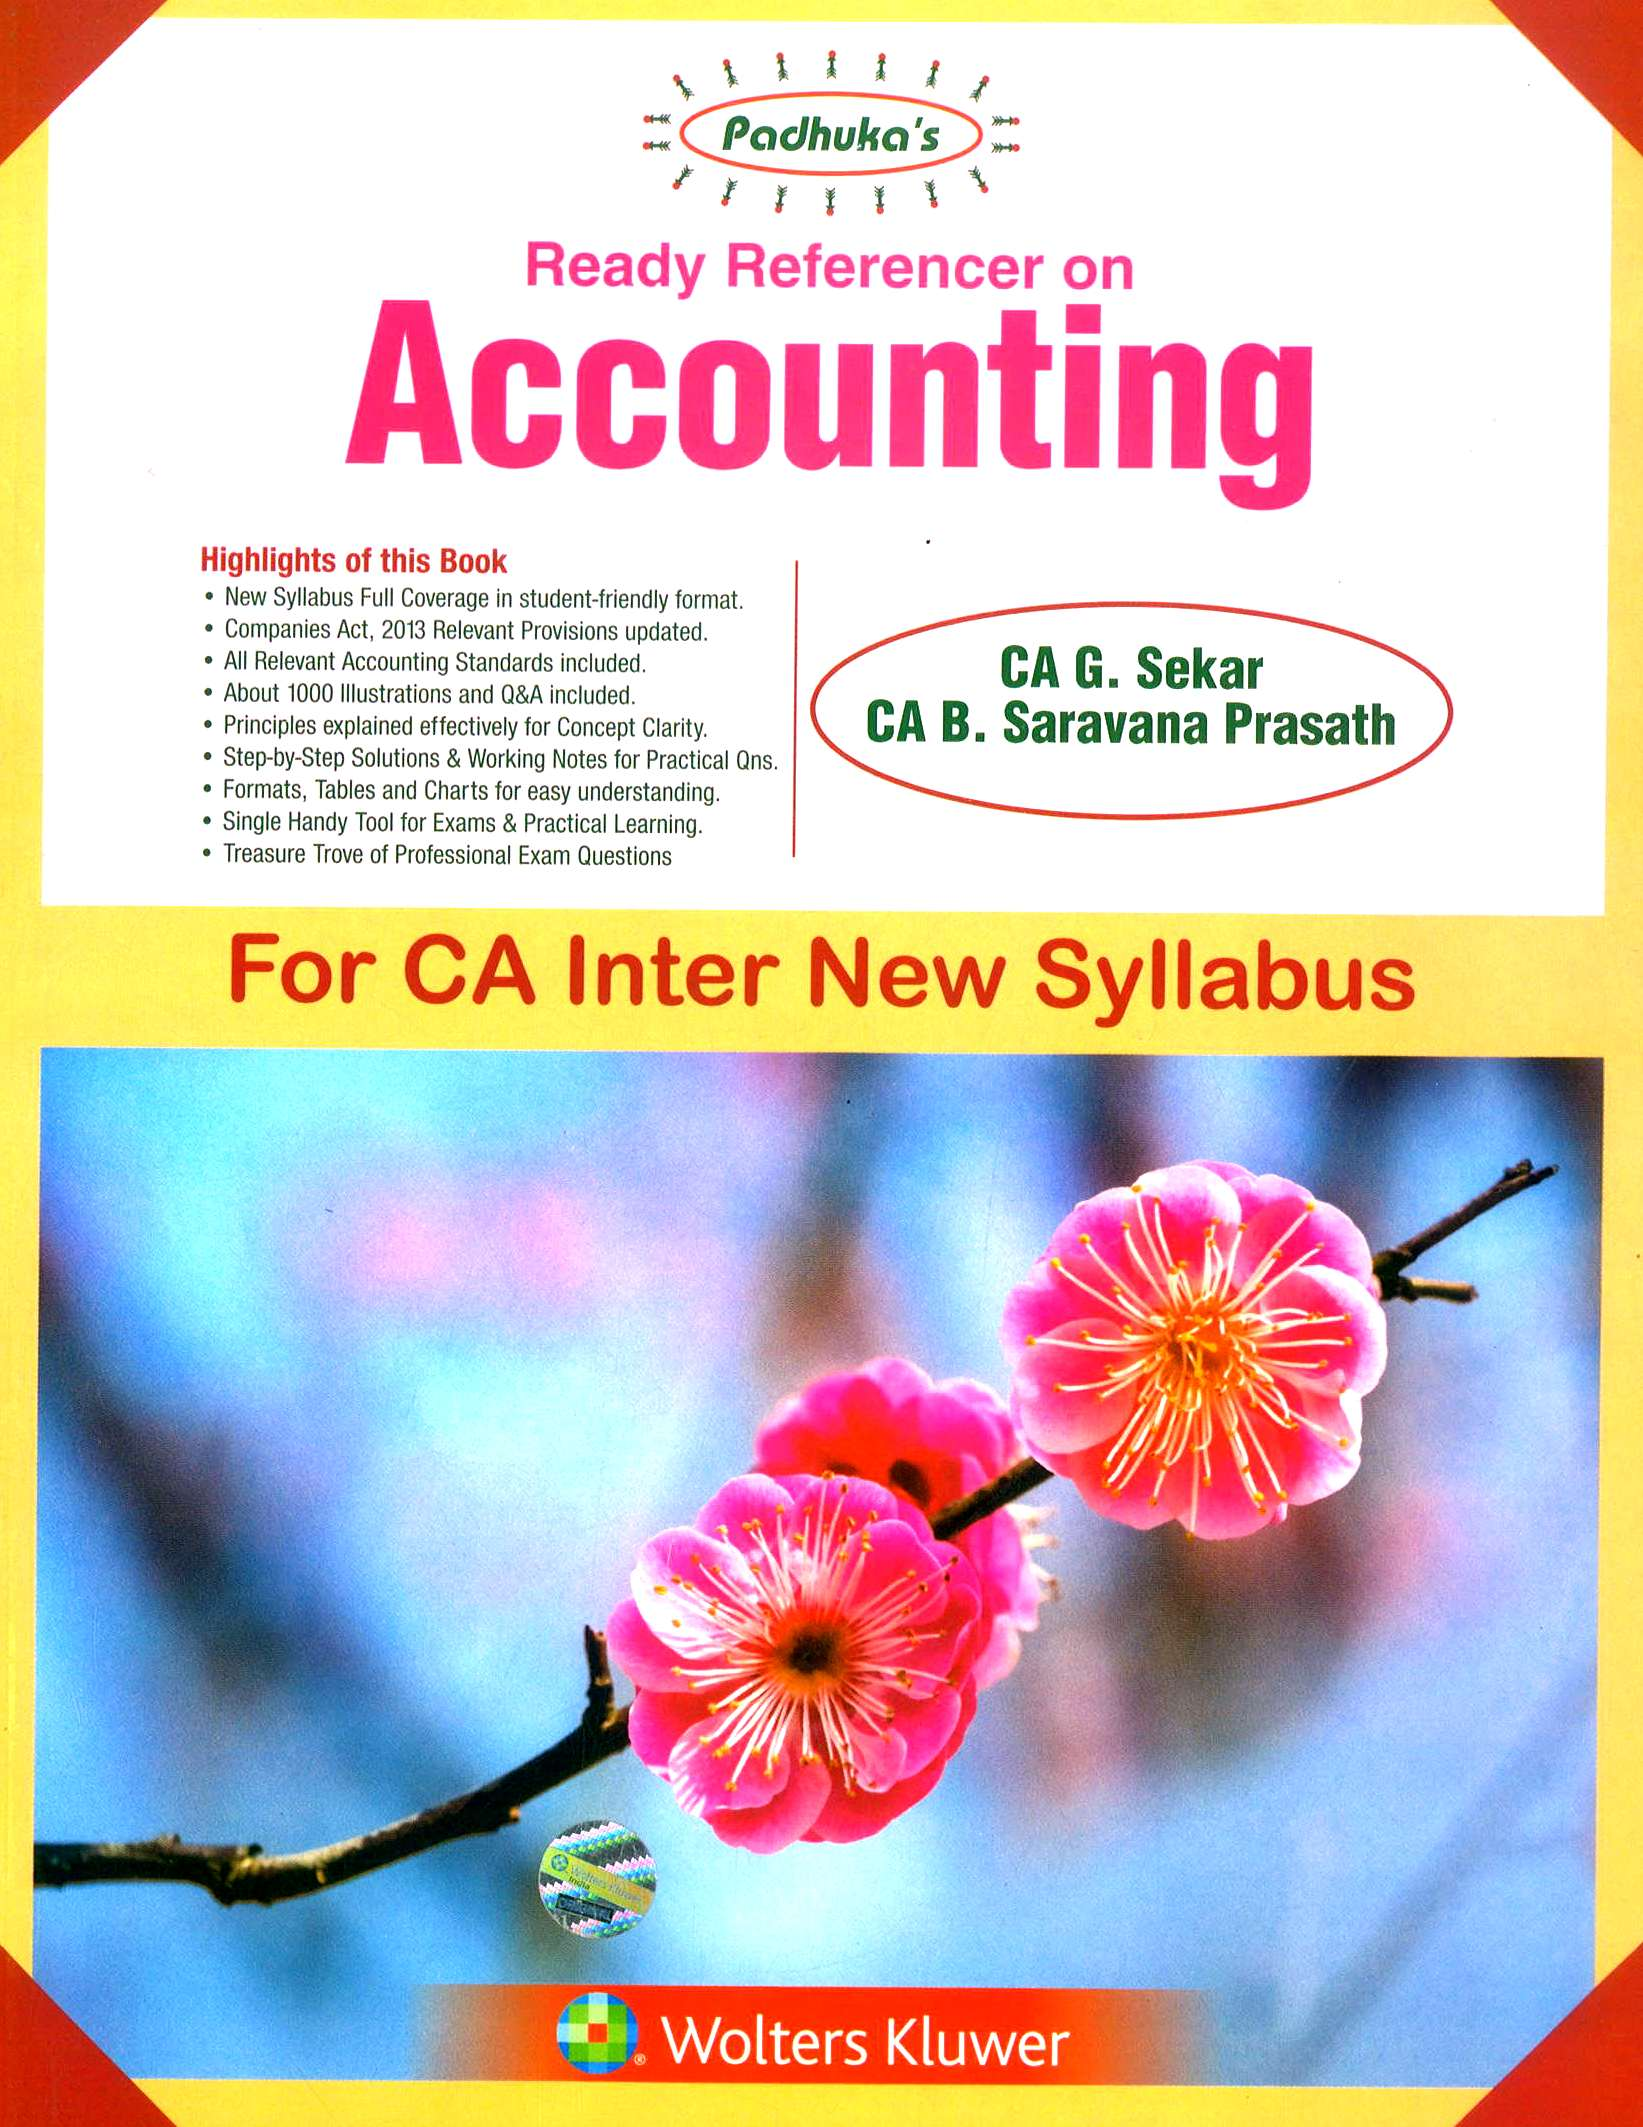 CCH Paduka's Ready Reference on Accounting for CA Inter new syllabus (IPC) -Group I  by CA G. Sekar and CA B. Saravana Prasath (Wolters Kluwer Publishing) Edition May 2018 for Nov 2018 Exam